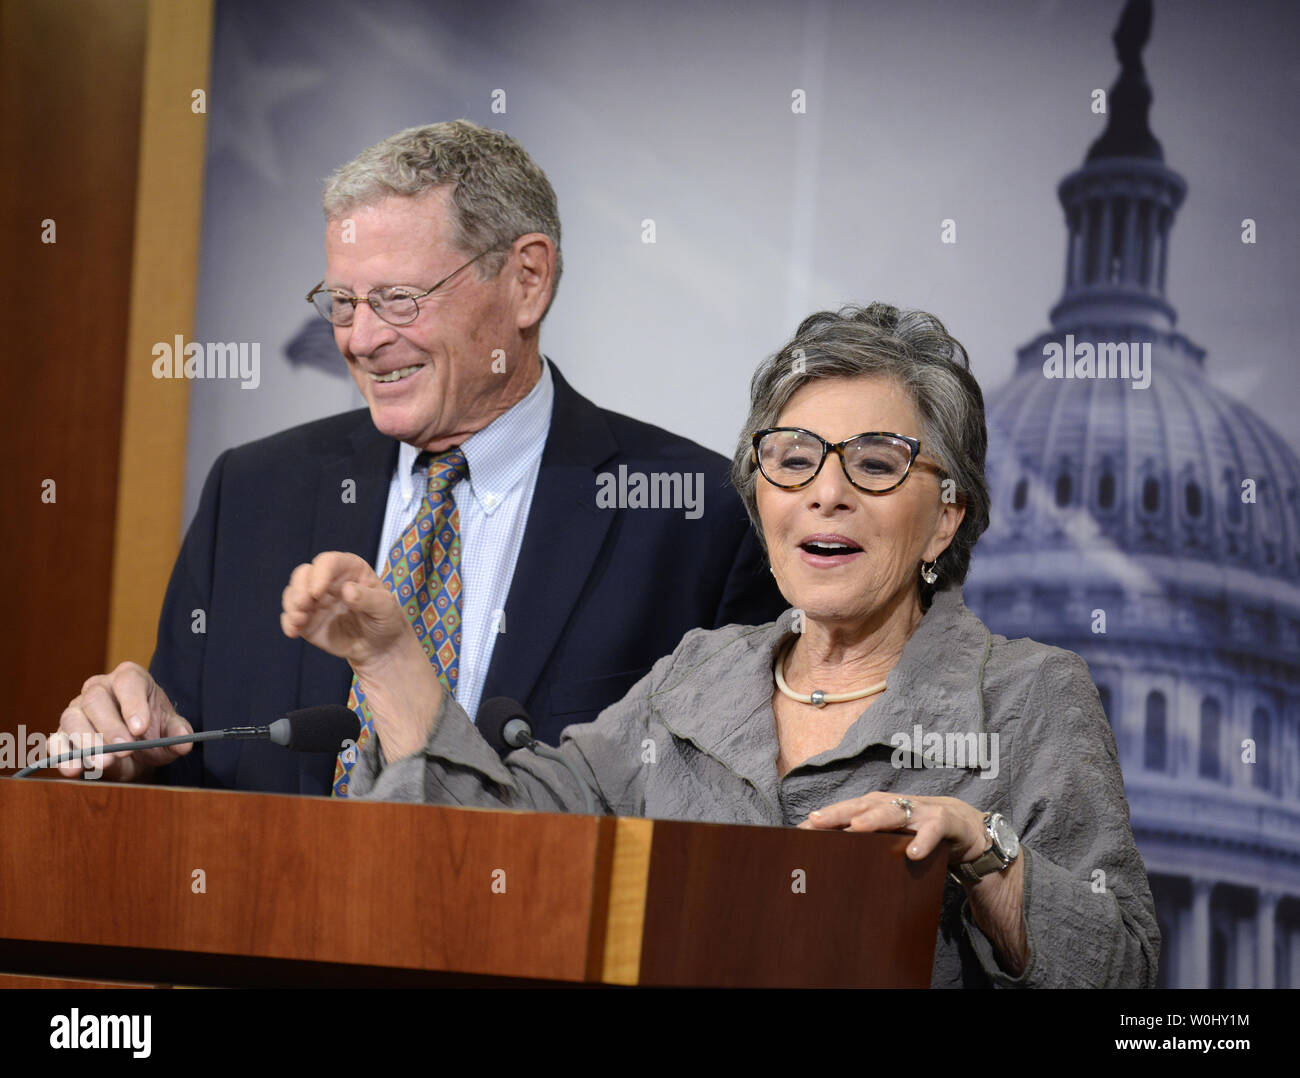 Sen. Barbara Boxer (D-CA), (R), makes remarks as Sen. James Imhofe (R-OK) listens on bipartisan legislation to continue funding the Federal Highway Trust Fund, at the U.S. Capitol, July 30, 2015, in Washington, DC. Congress appears ready to pass a temporary spending 'patch' since the House has already recessed for the summer.        Photo by Mike Theiler/UPI - Stock Image